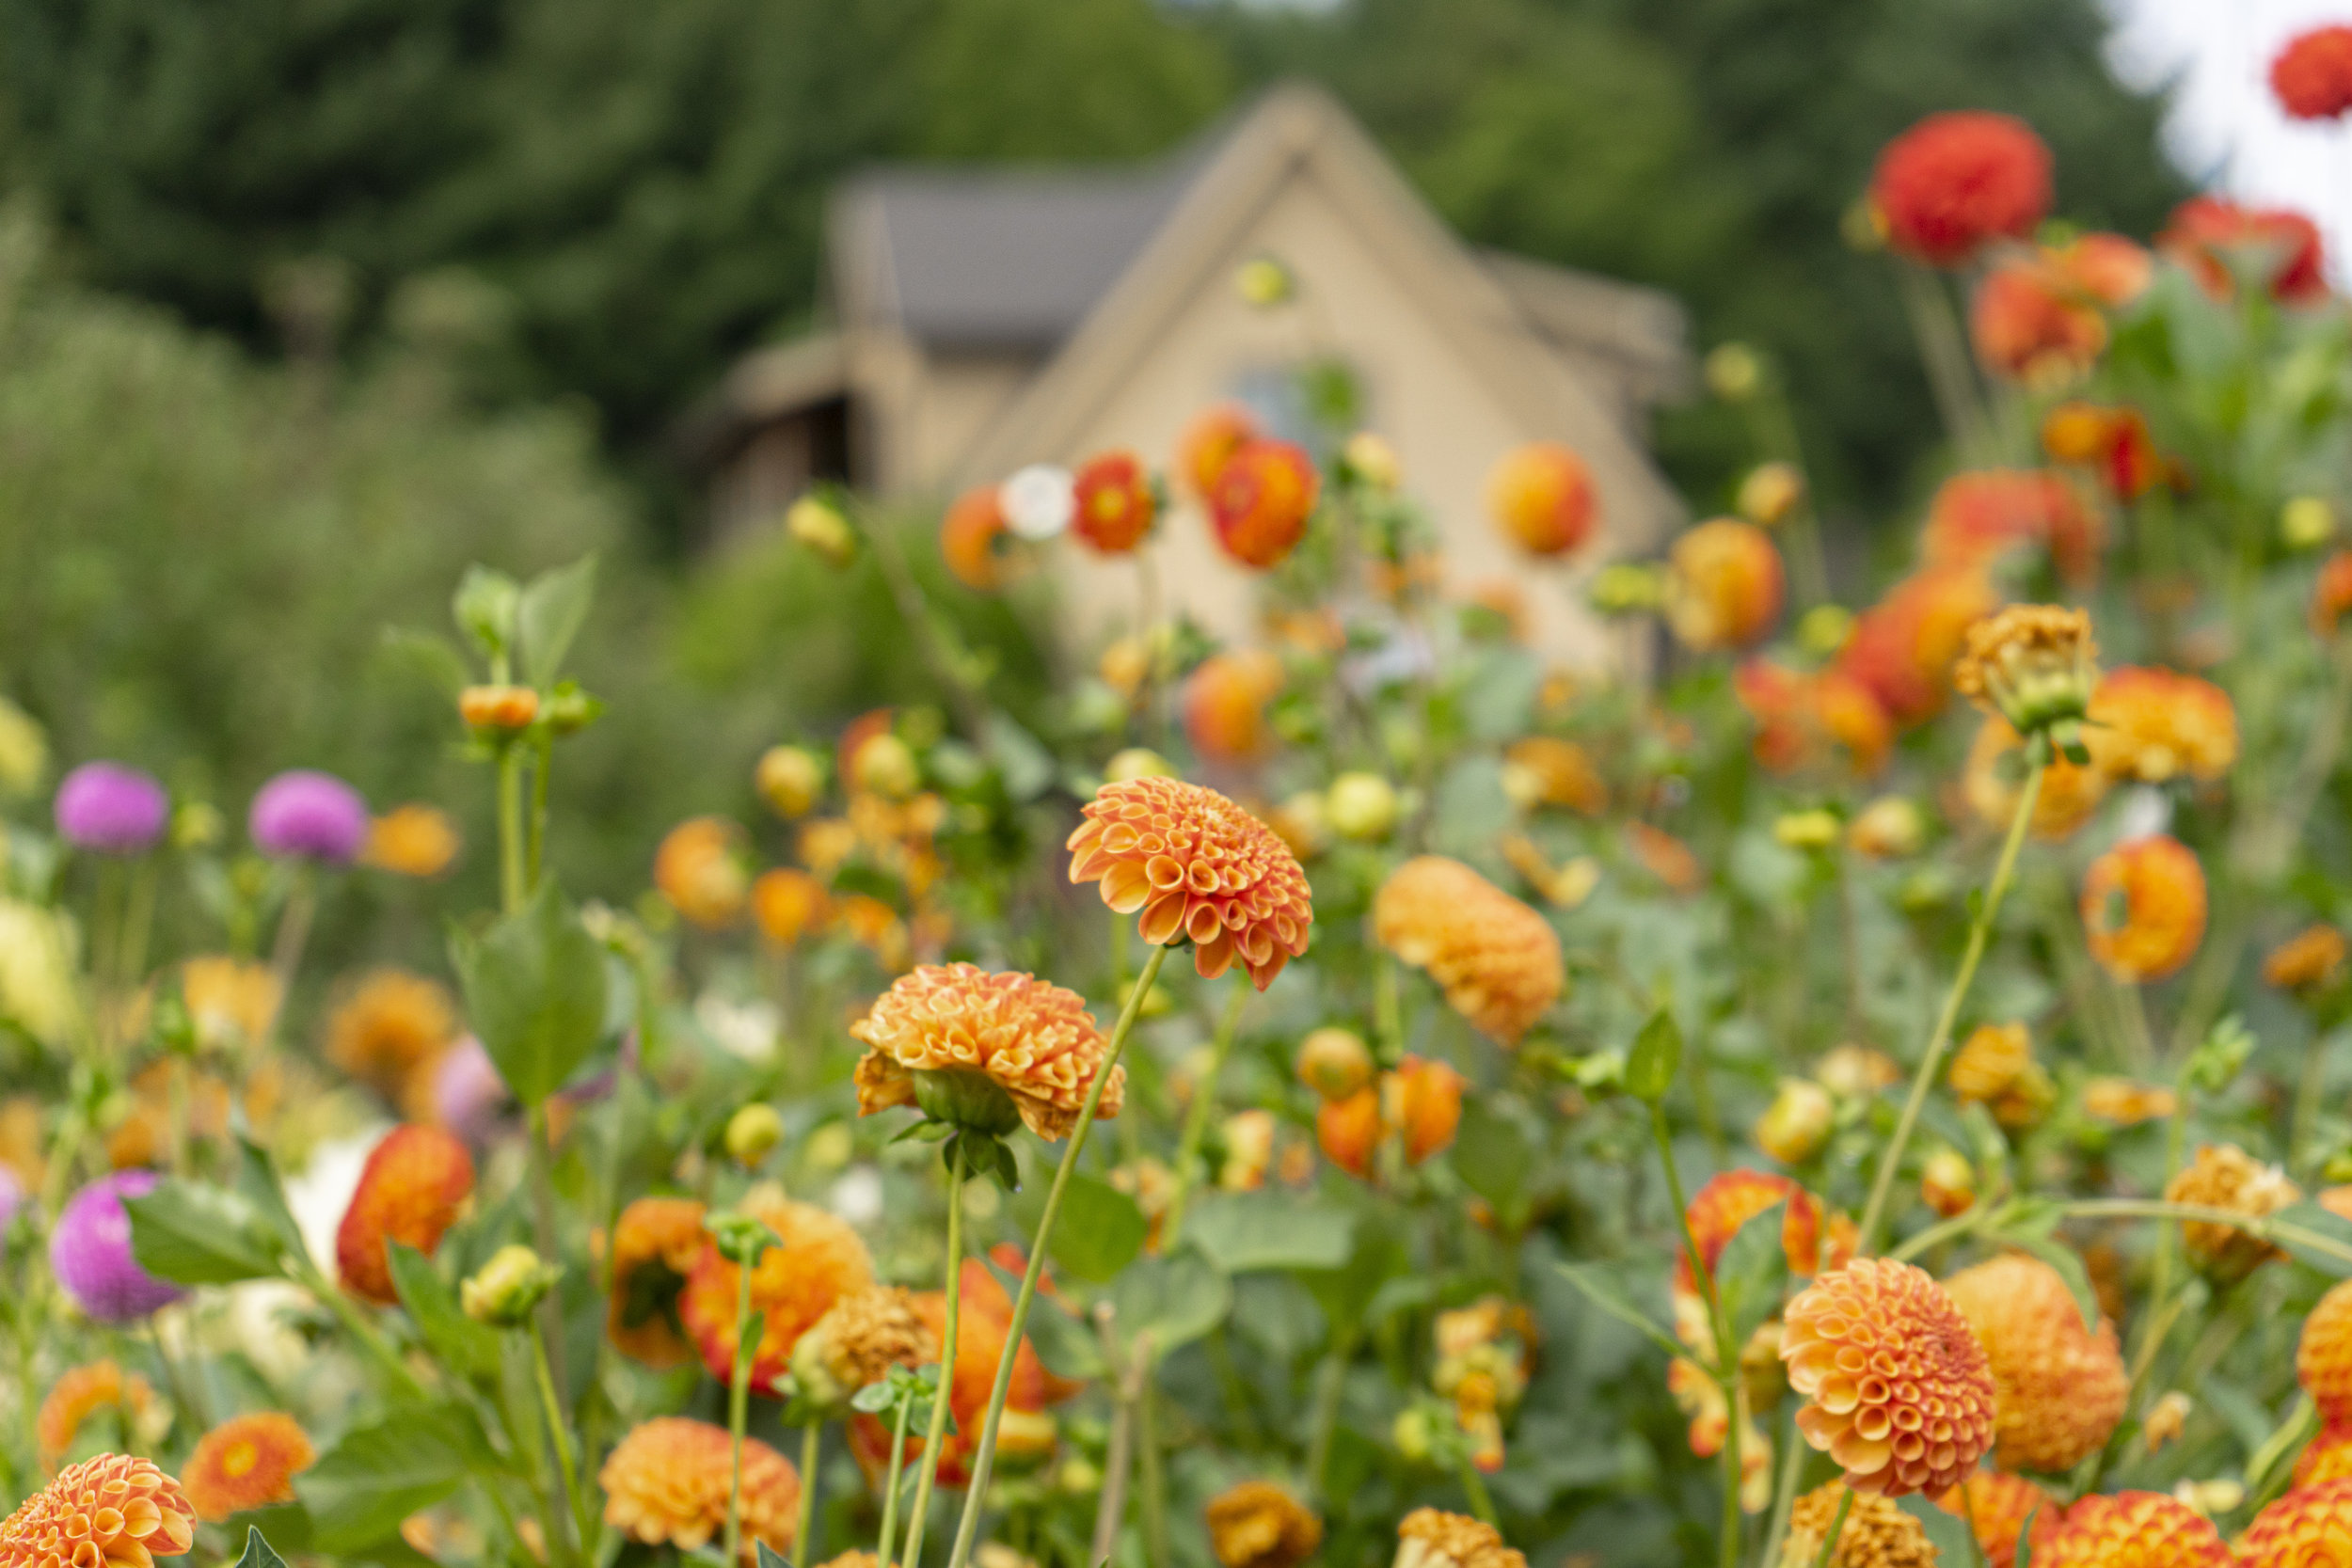 Gardens abound allow for a healthy variety of options all over the farm.